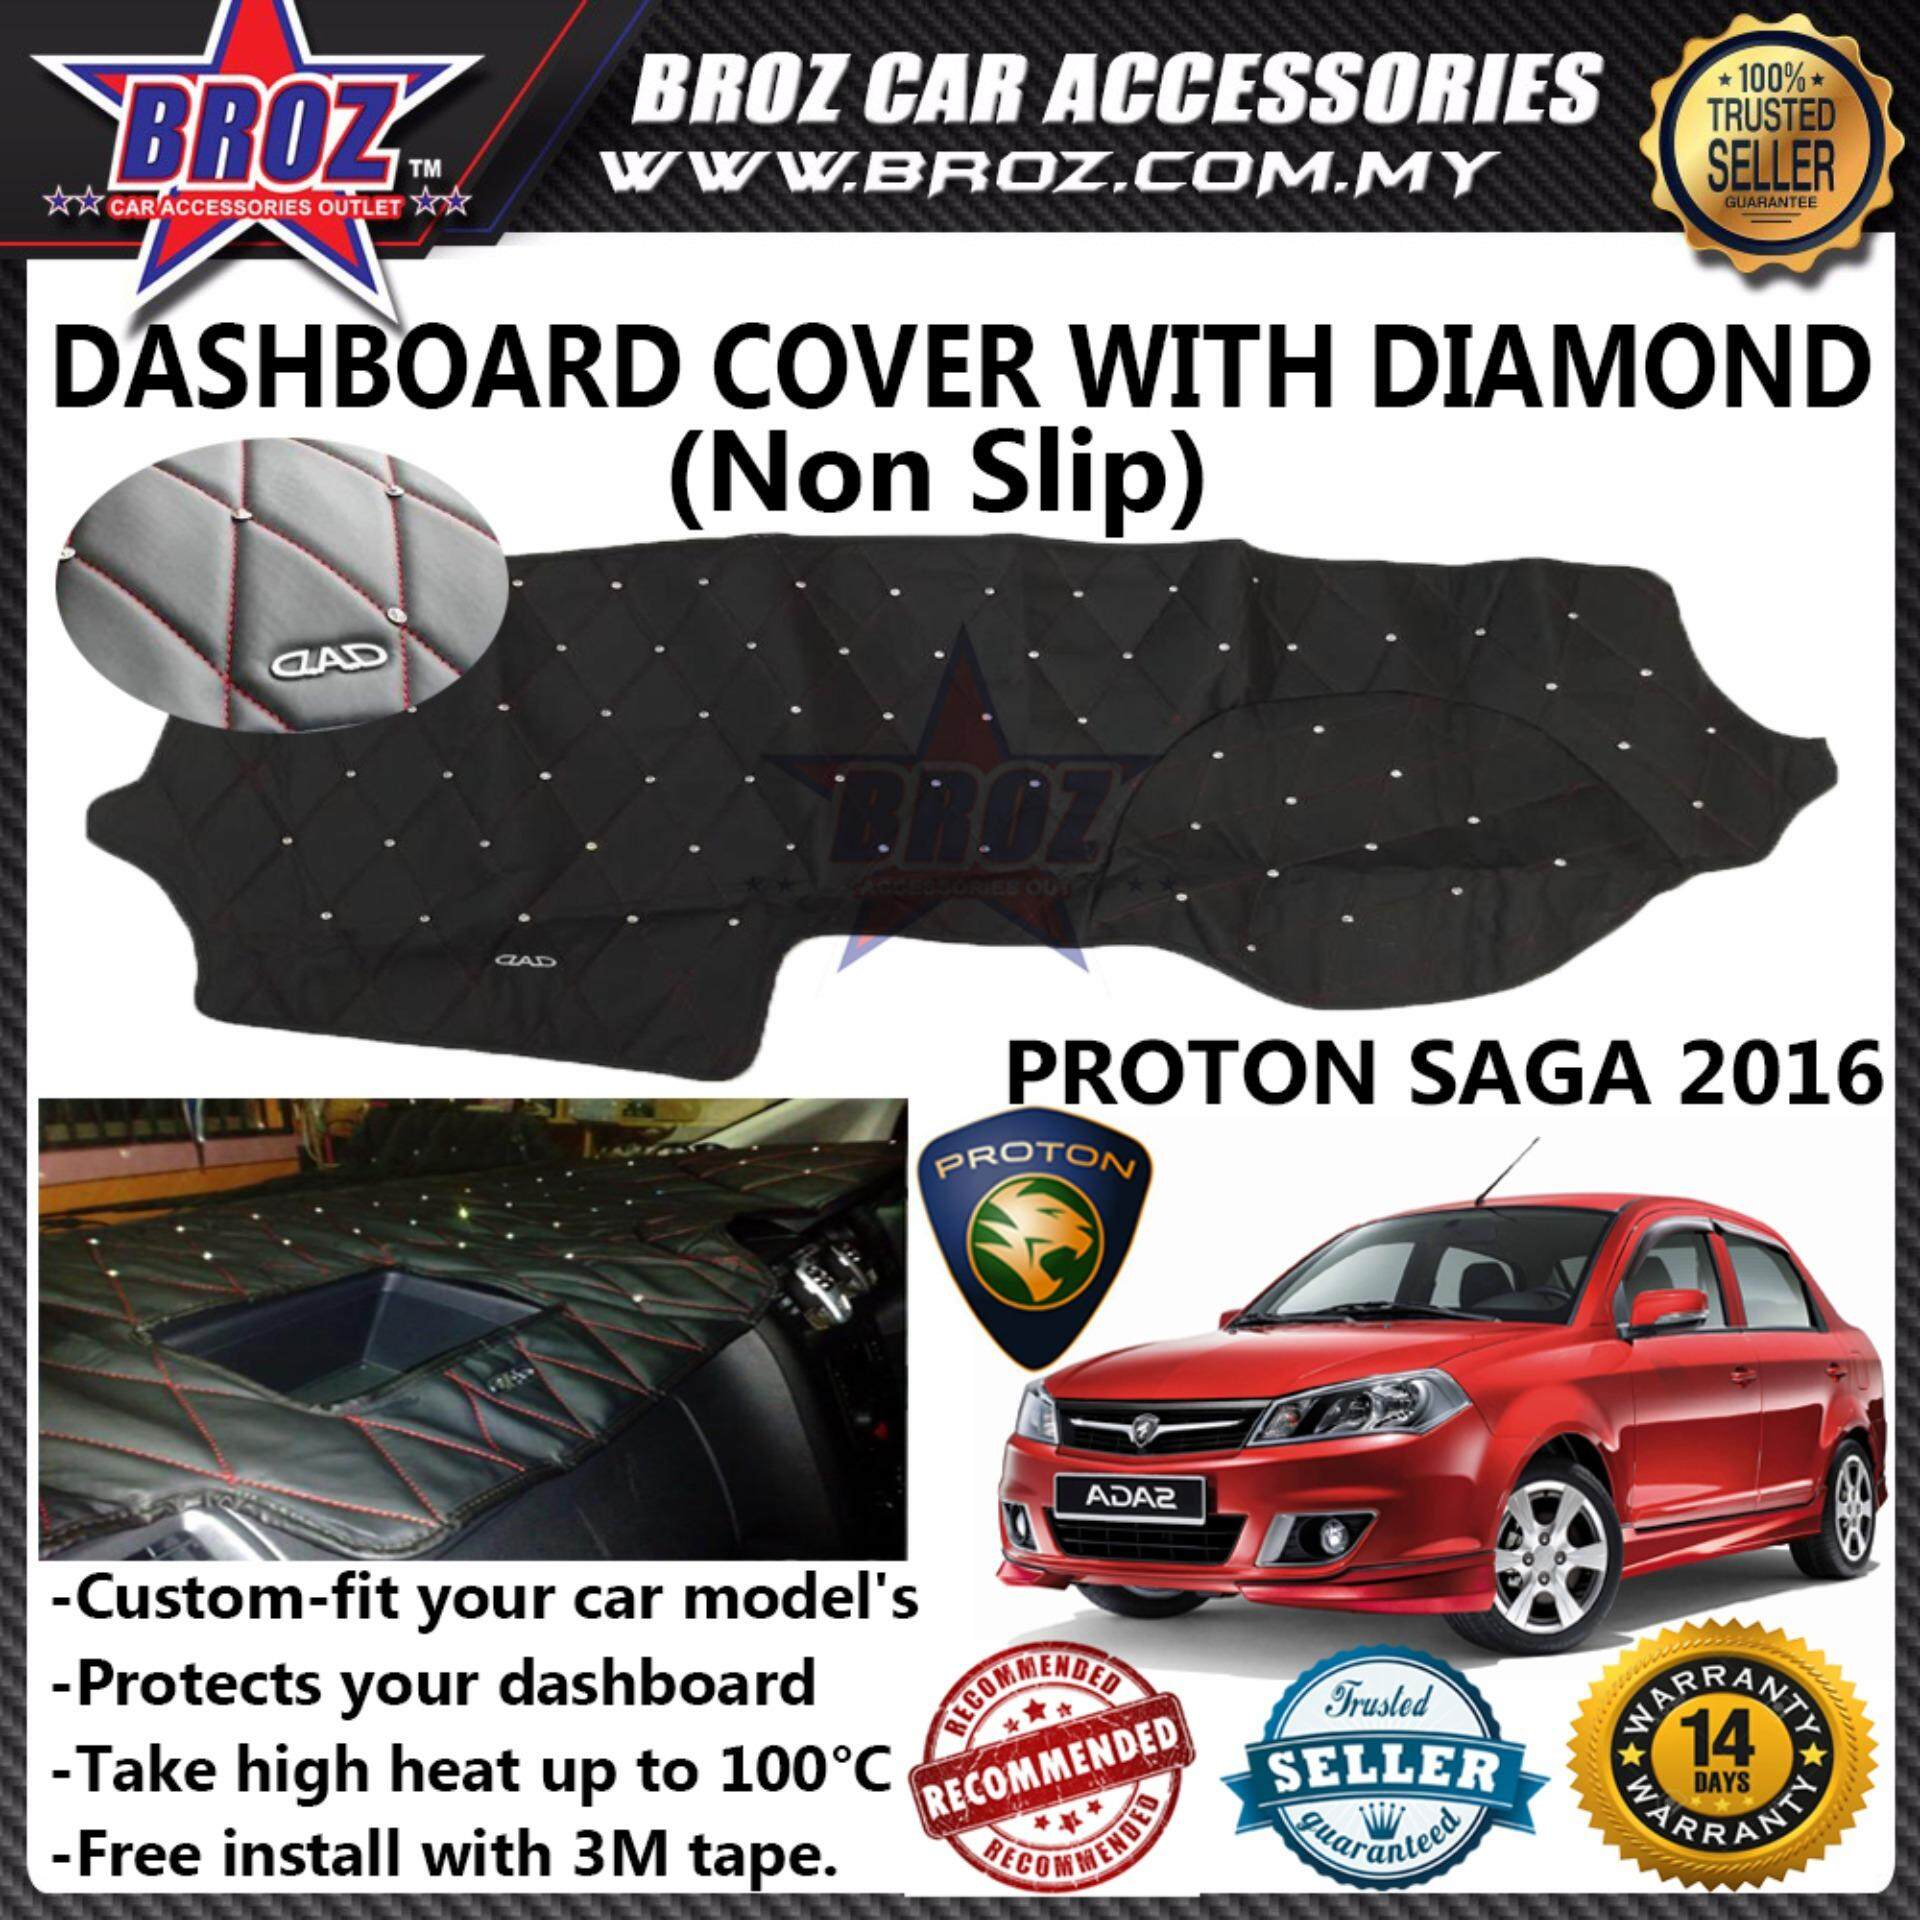 Broz Non Slip Dashboard Cover with diamond for Proton Saga 2016